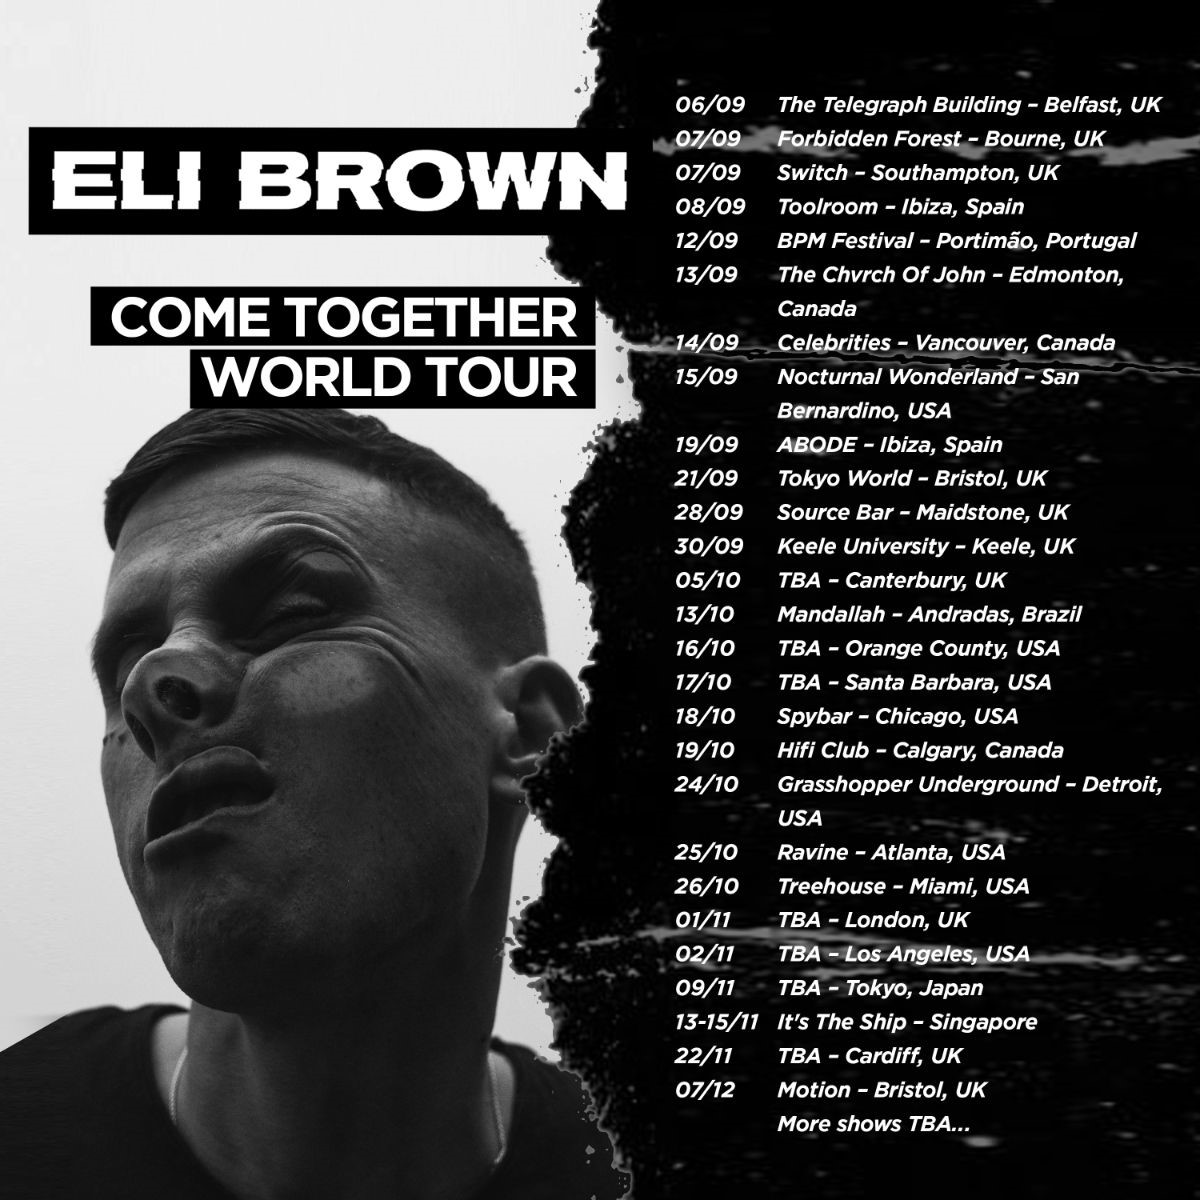 Eli Brown Come Together World Tour Dates